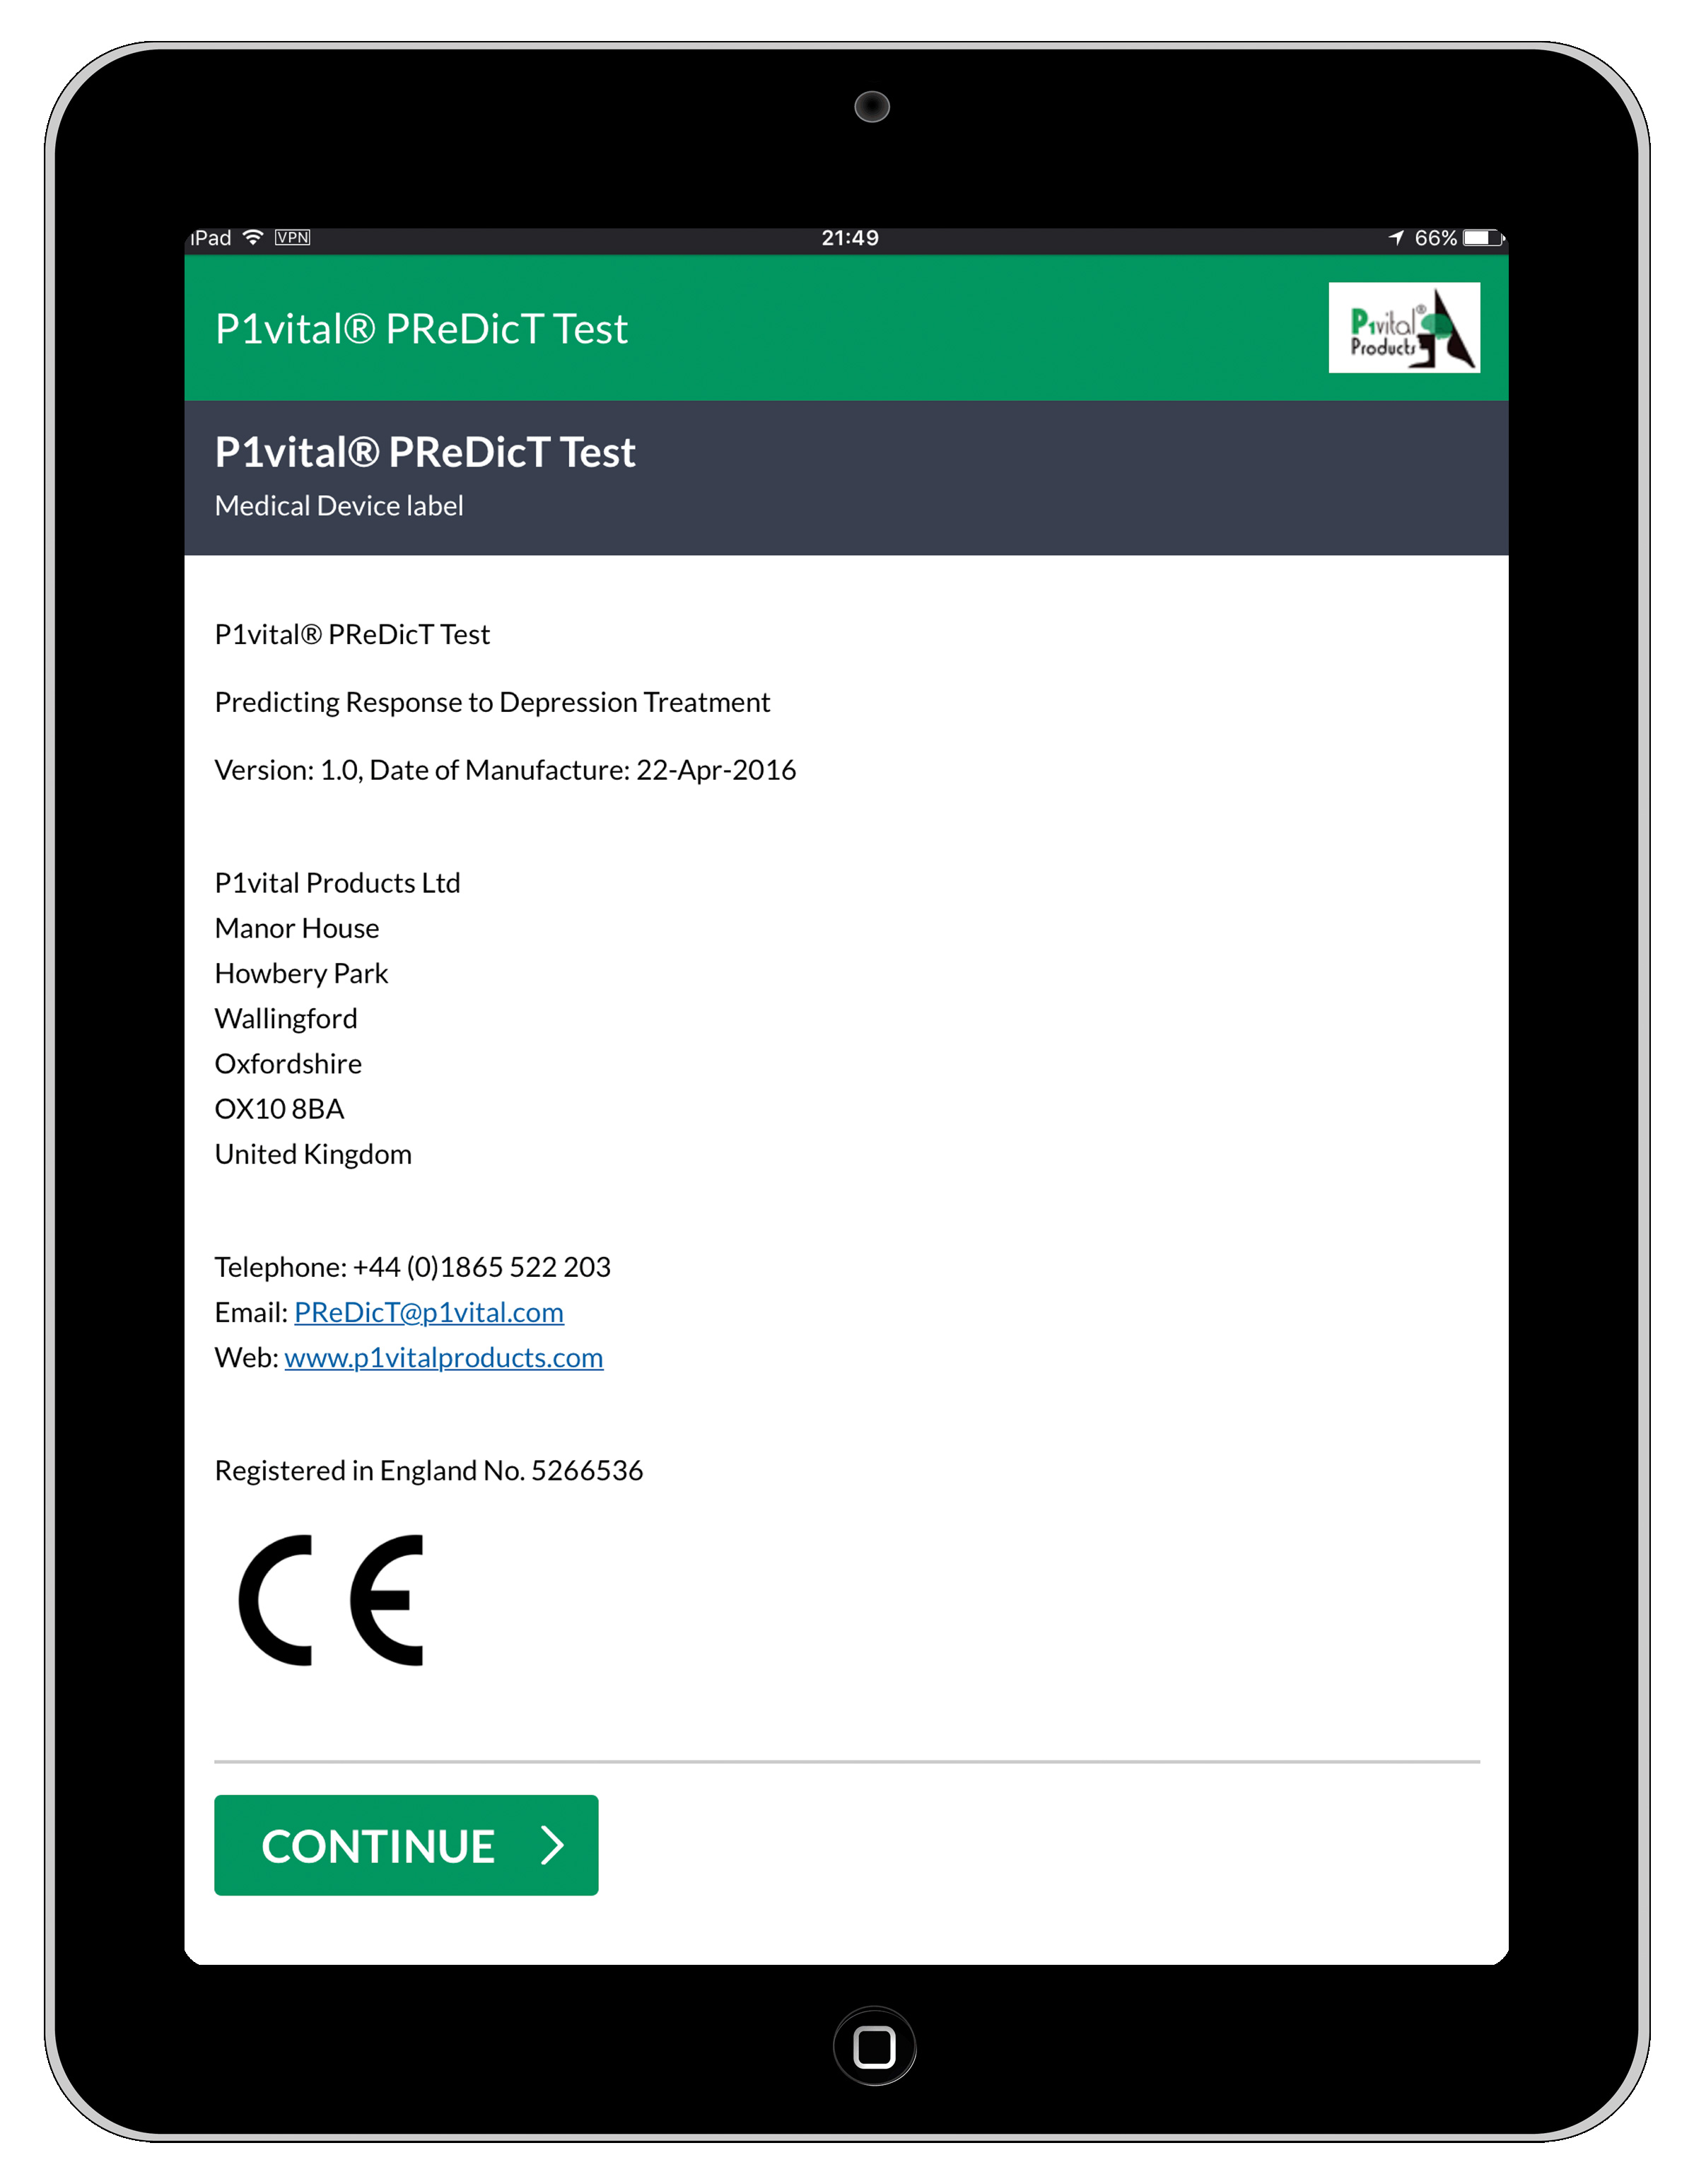 P1vi­tal® PRe­DicT Test on Tablet